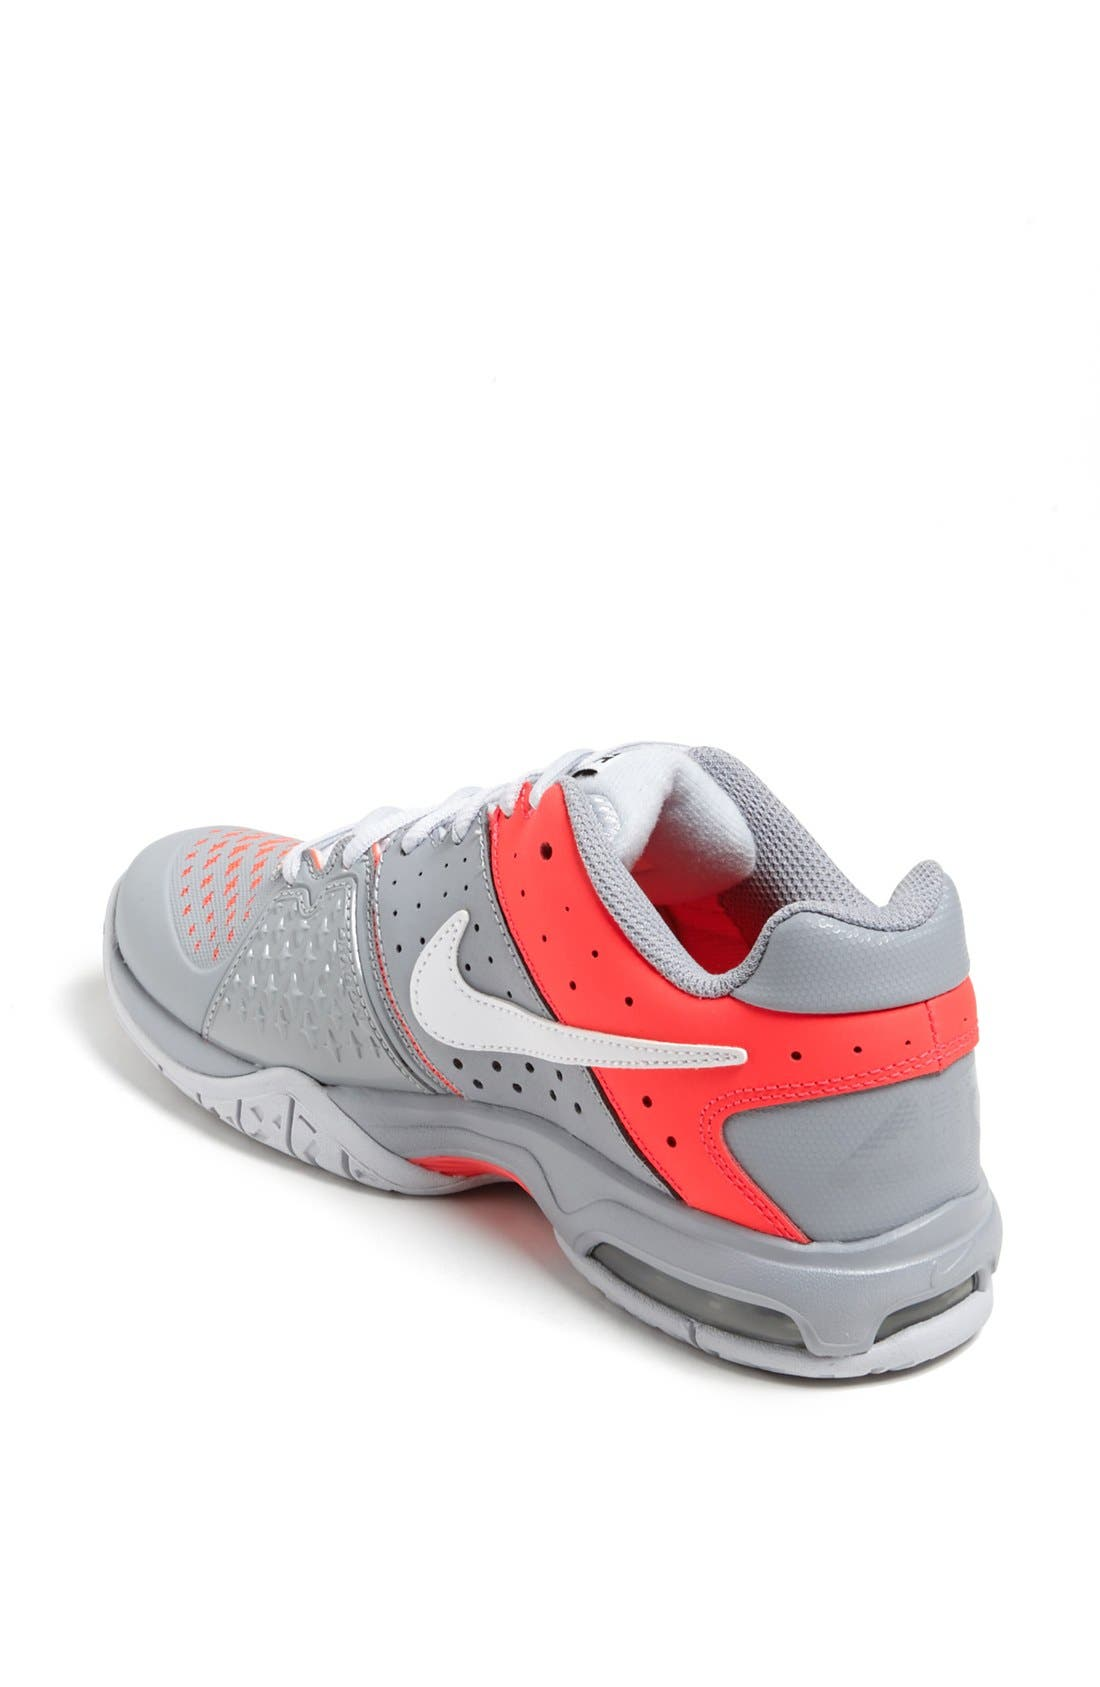 Alternate Image 2  - Nike 'Air Cage Advantage' Tennis Shoe (Women)